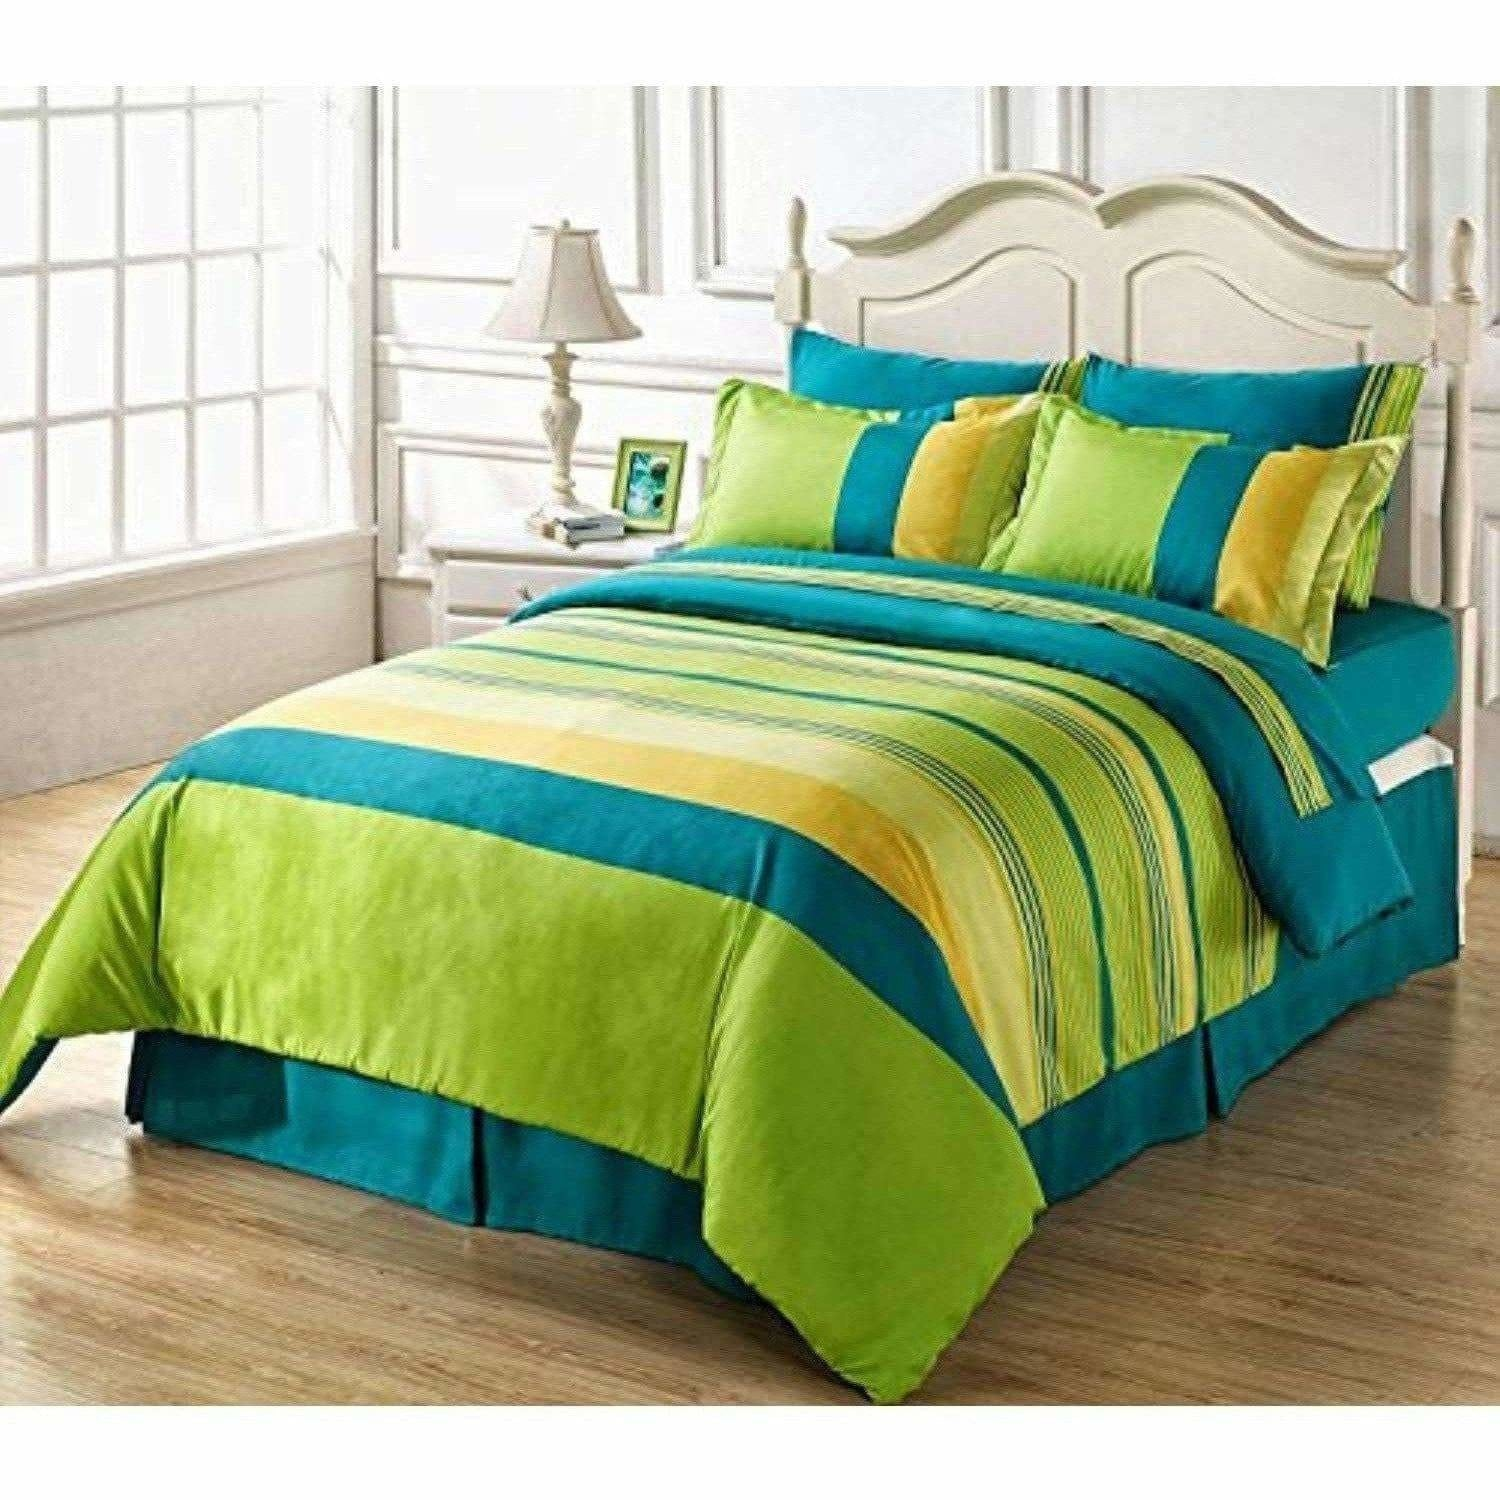 Cotton Double Bedsheet with 2 Pillow Covers - Multicolour